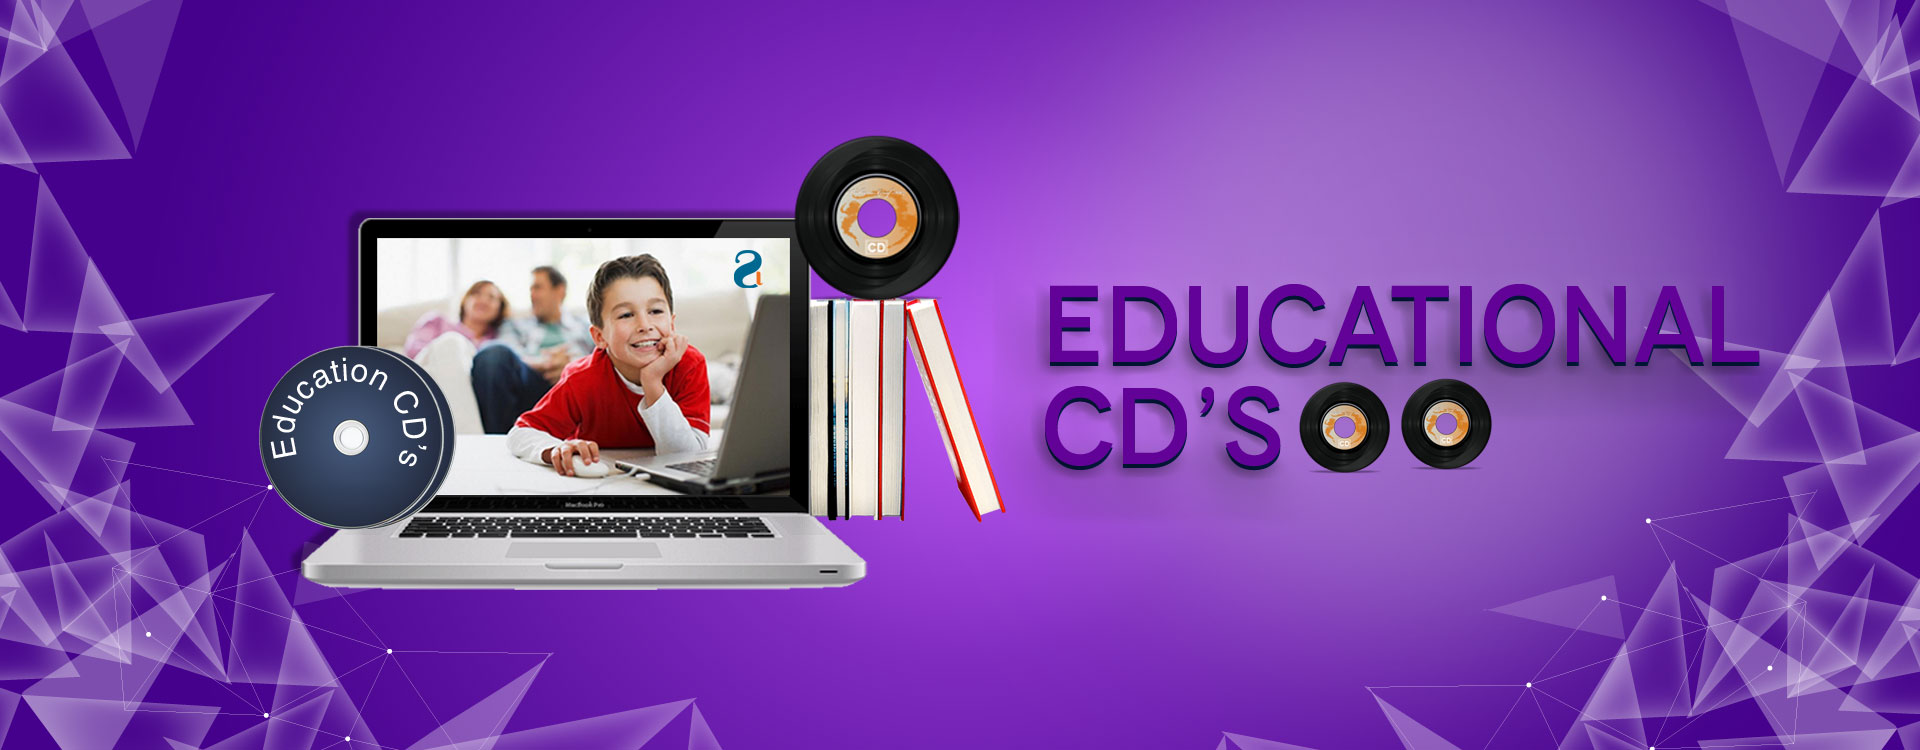 Educational cd's